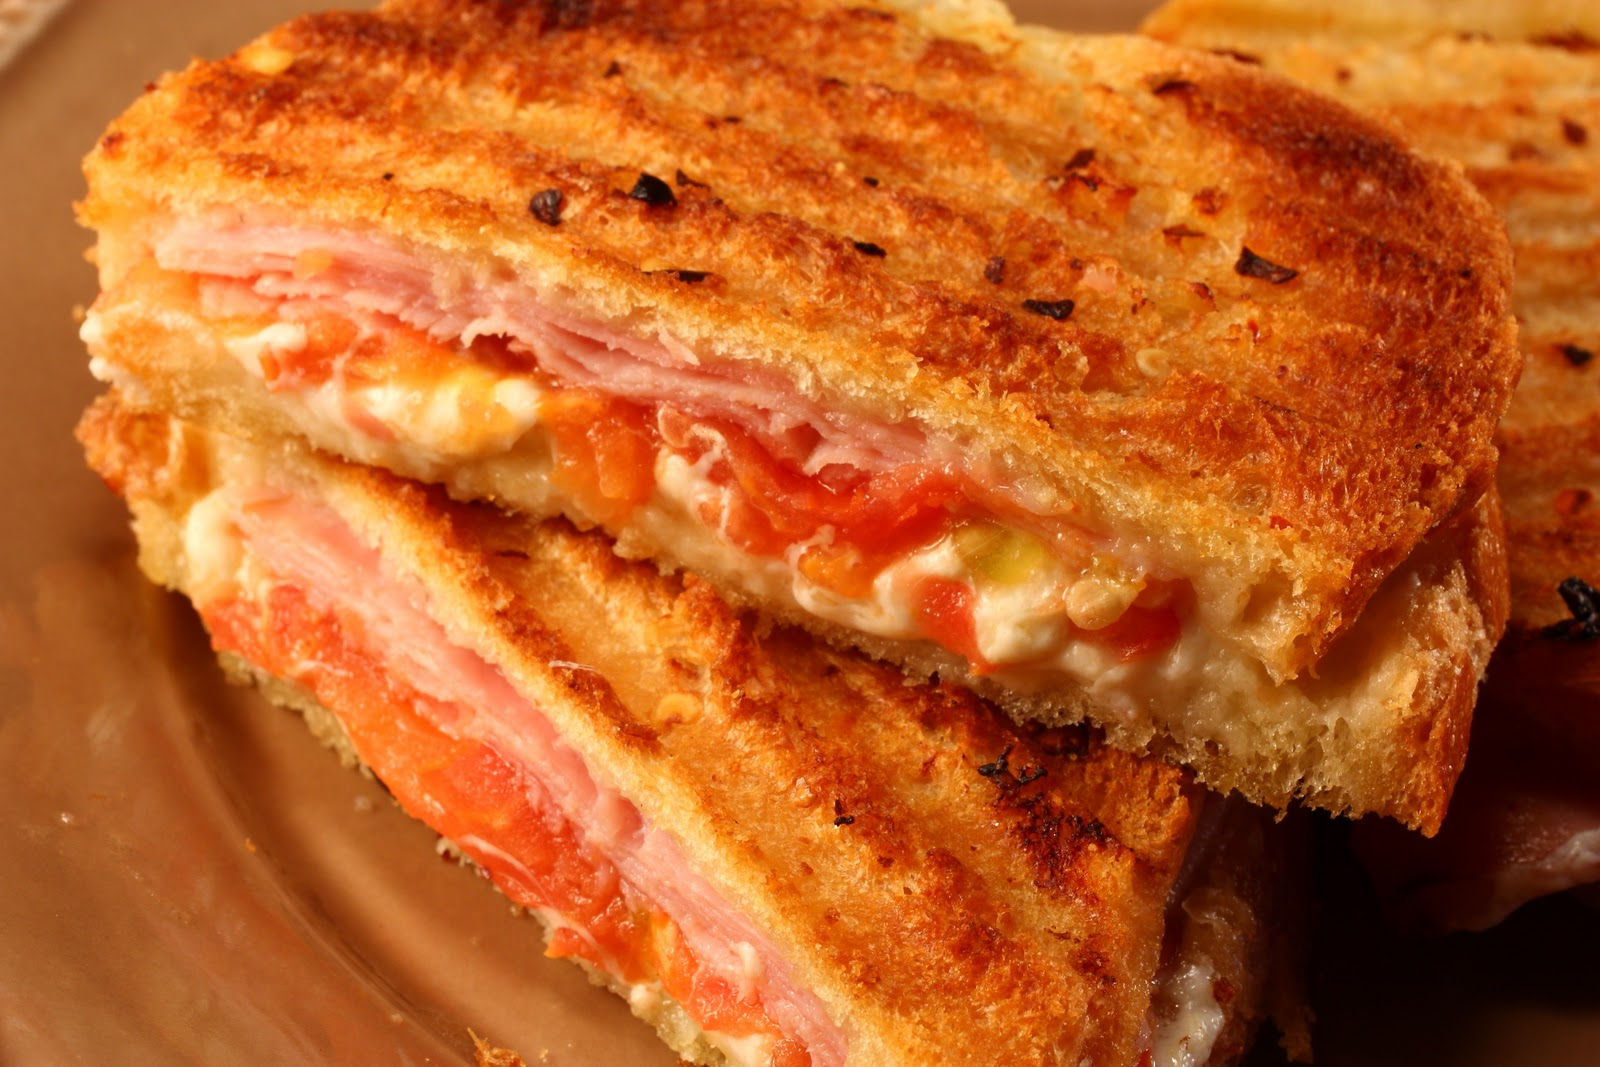 Chef Chuck's Cucina: Chef Chuck's Italian Grilled Ham and Cheese